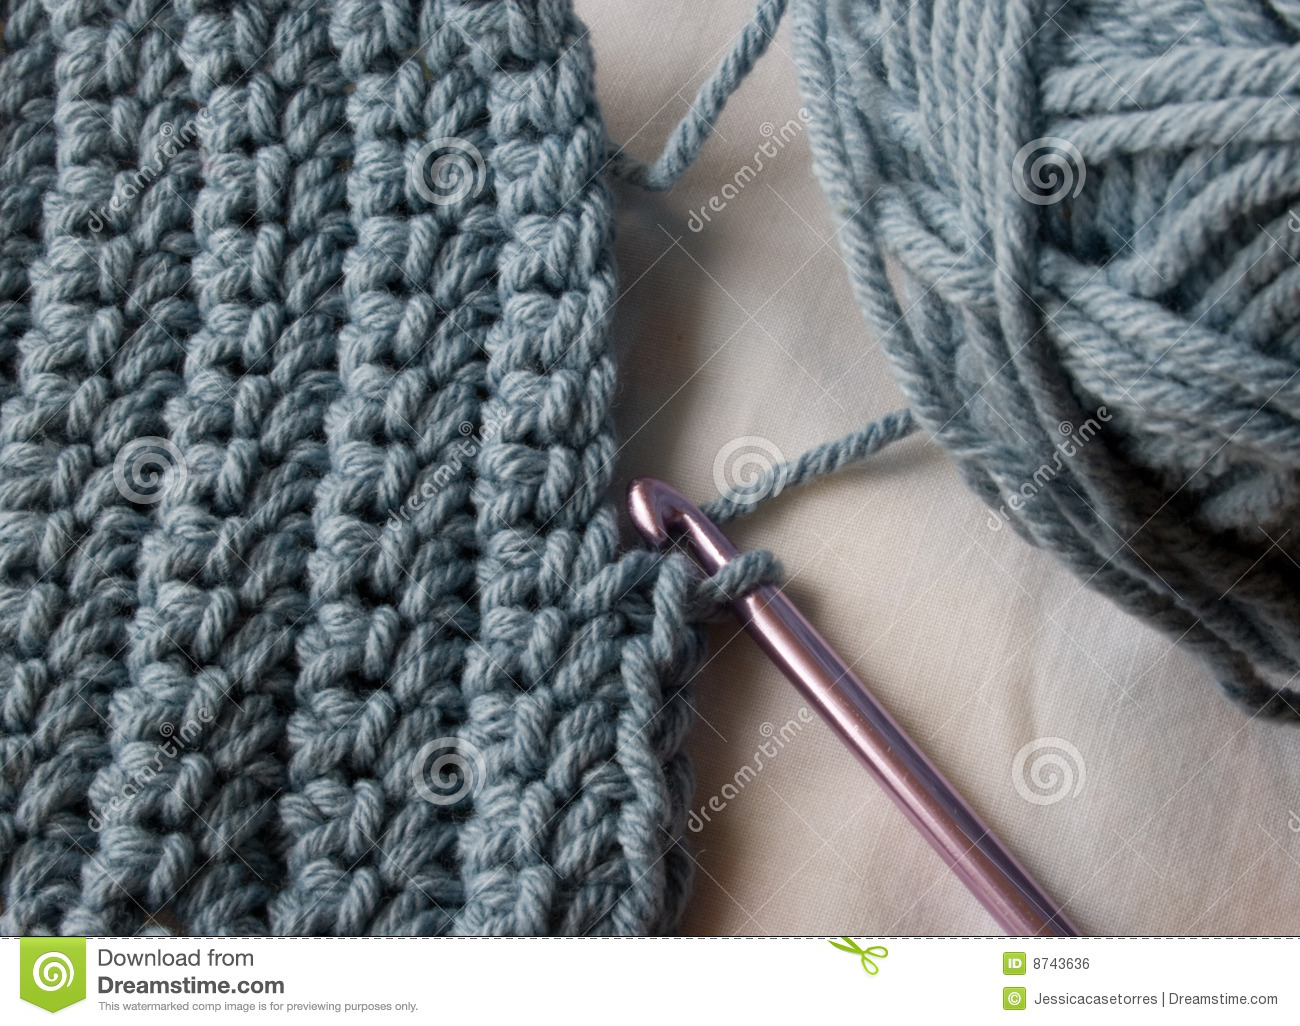 Crochet Stitches Us : pink crochet hook is still in a crochet stitch made with blue yarn.